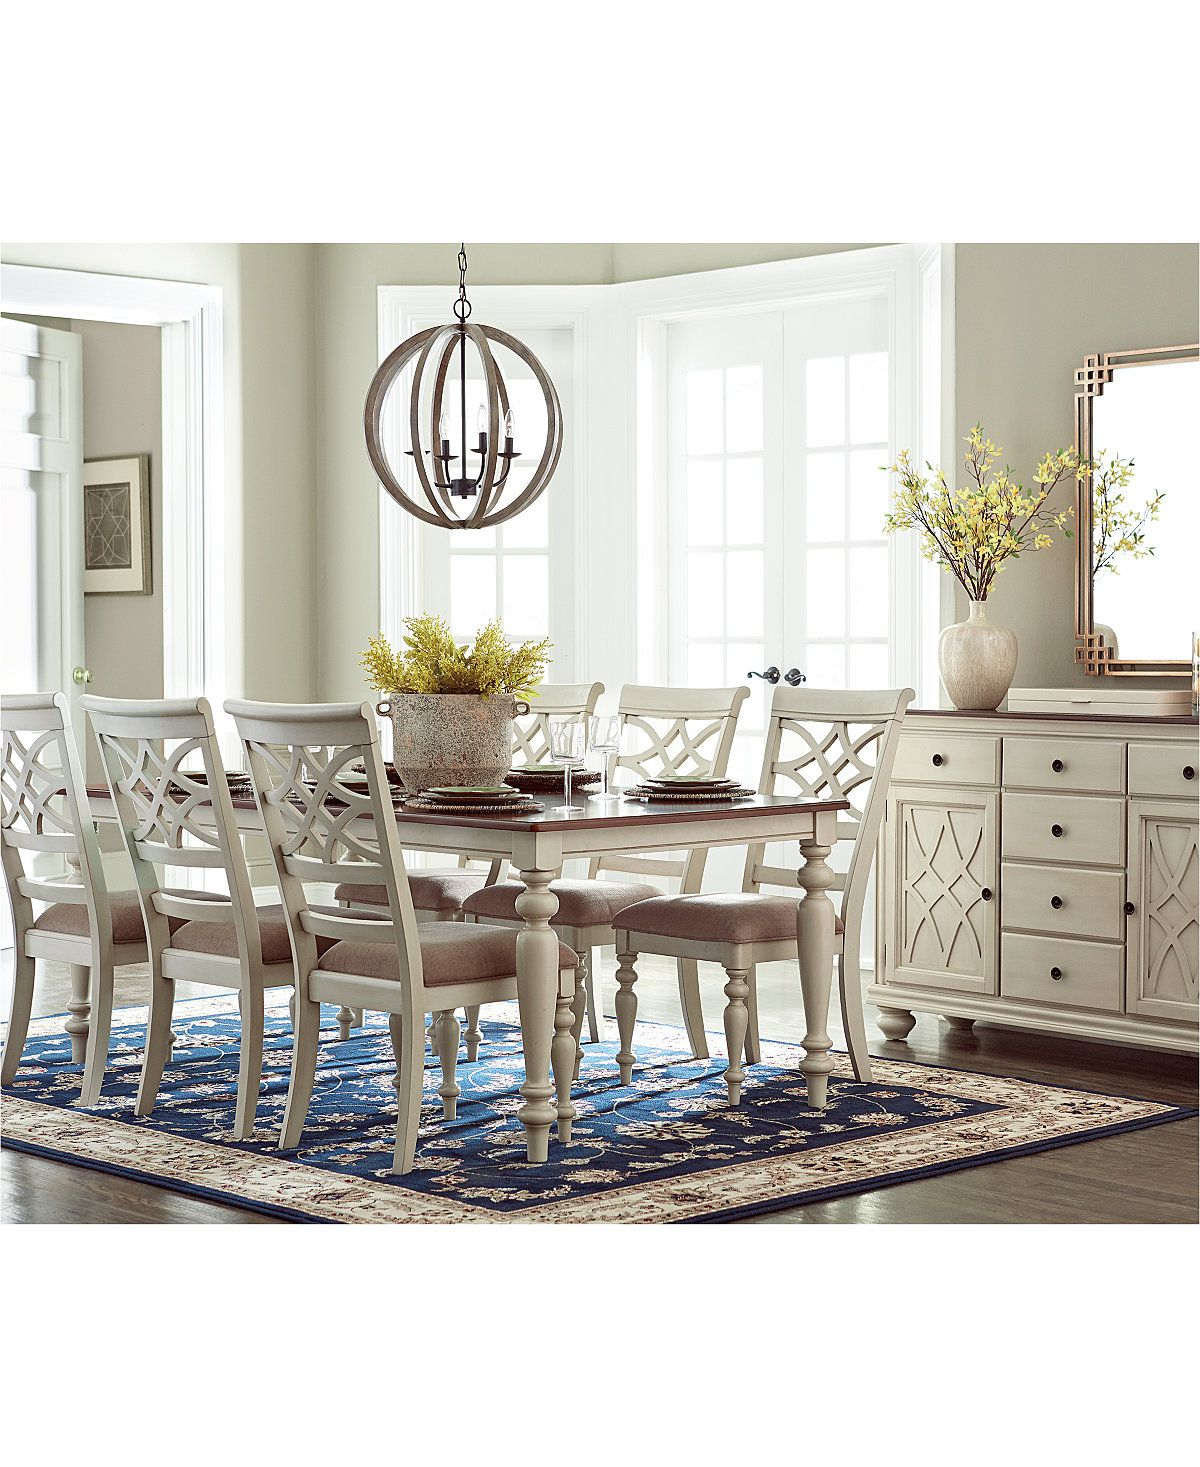 Newest Macy Dining Sets Sale Off 70